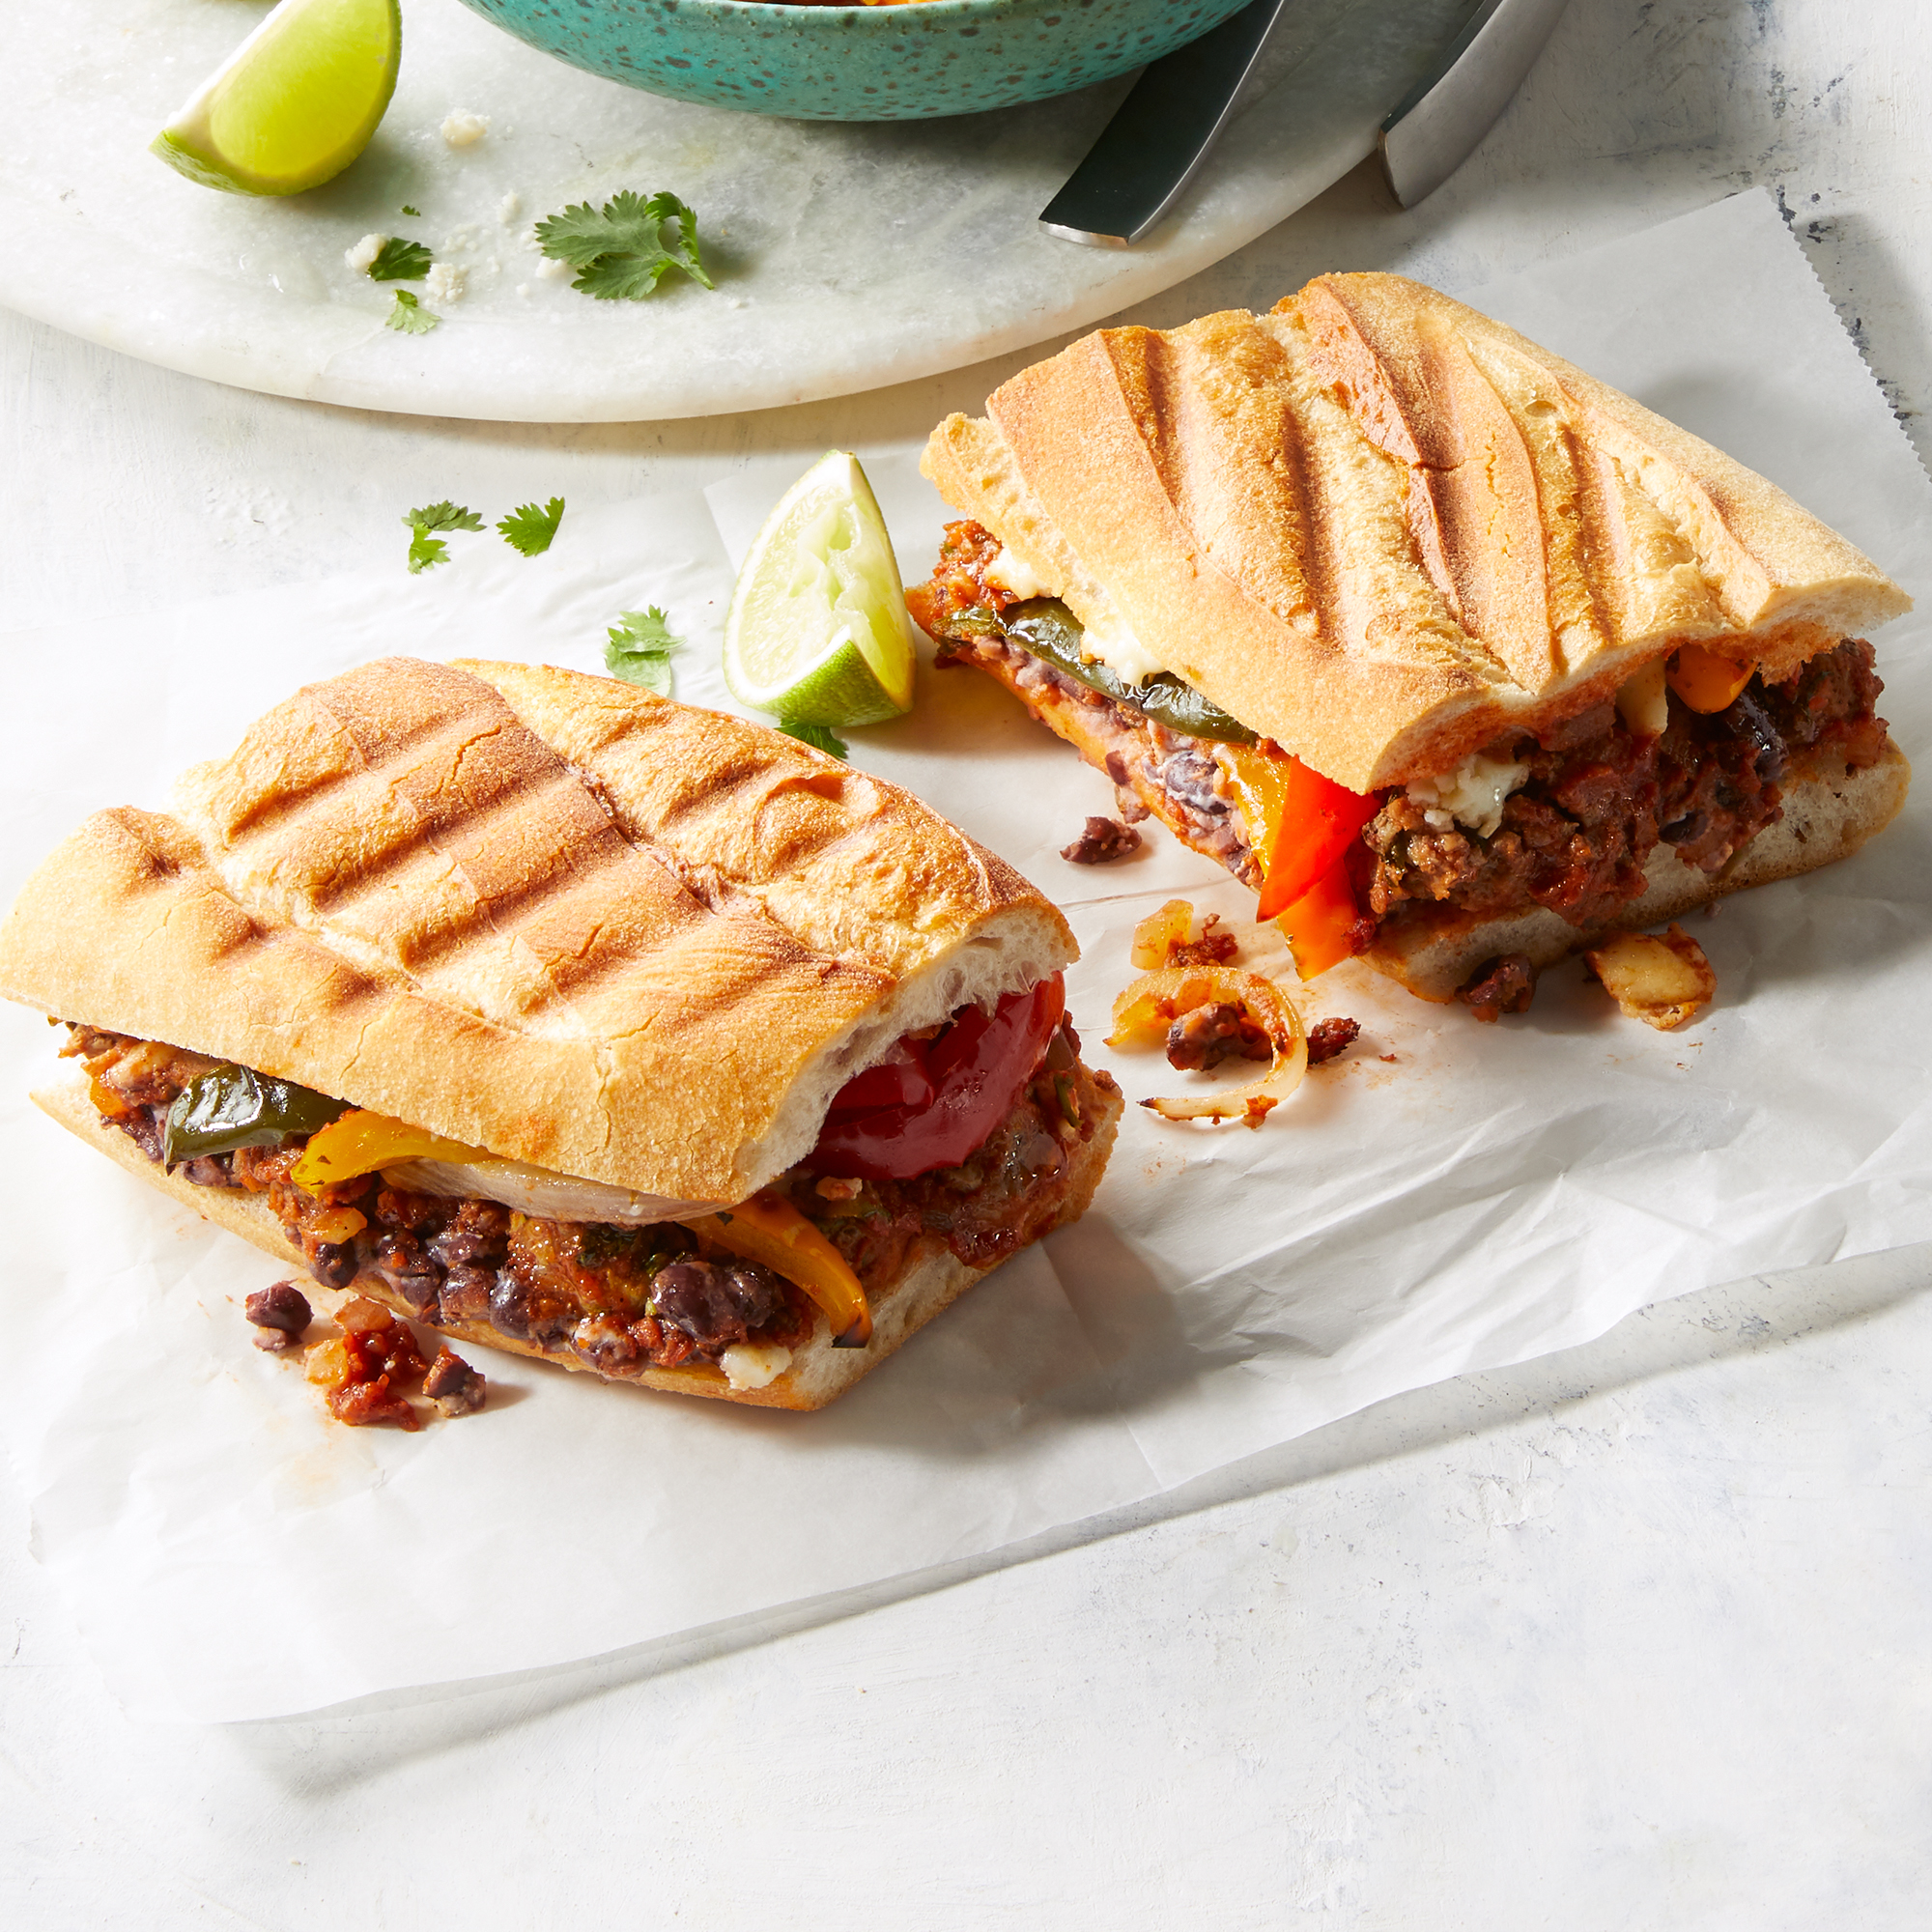 Chipotle Meatball Torta with Roasted Veggies